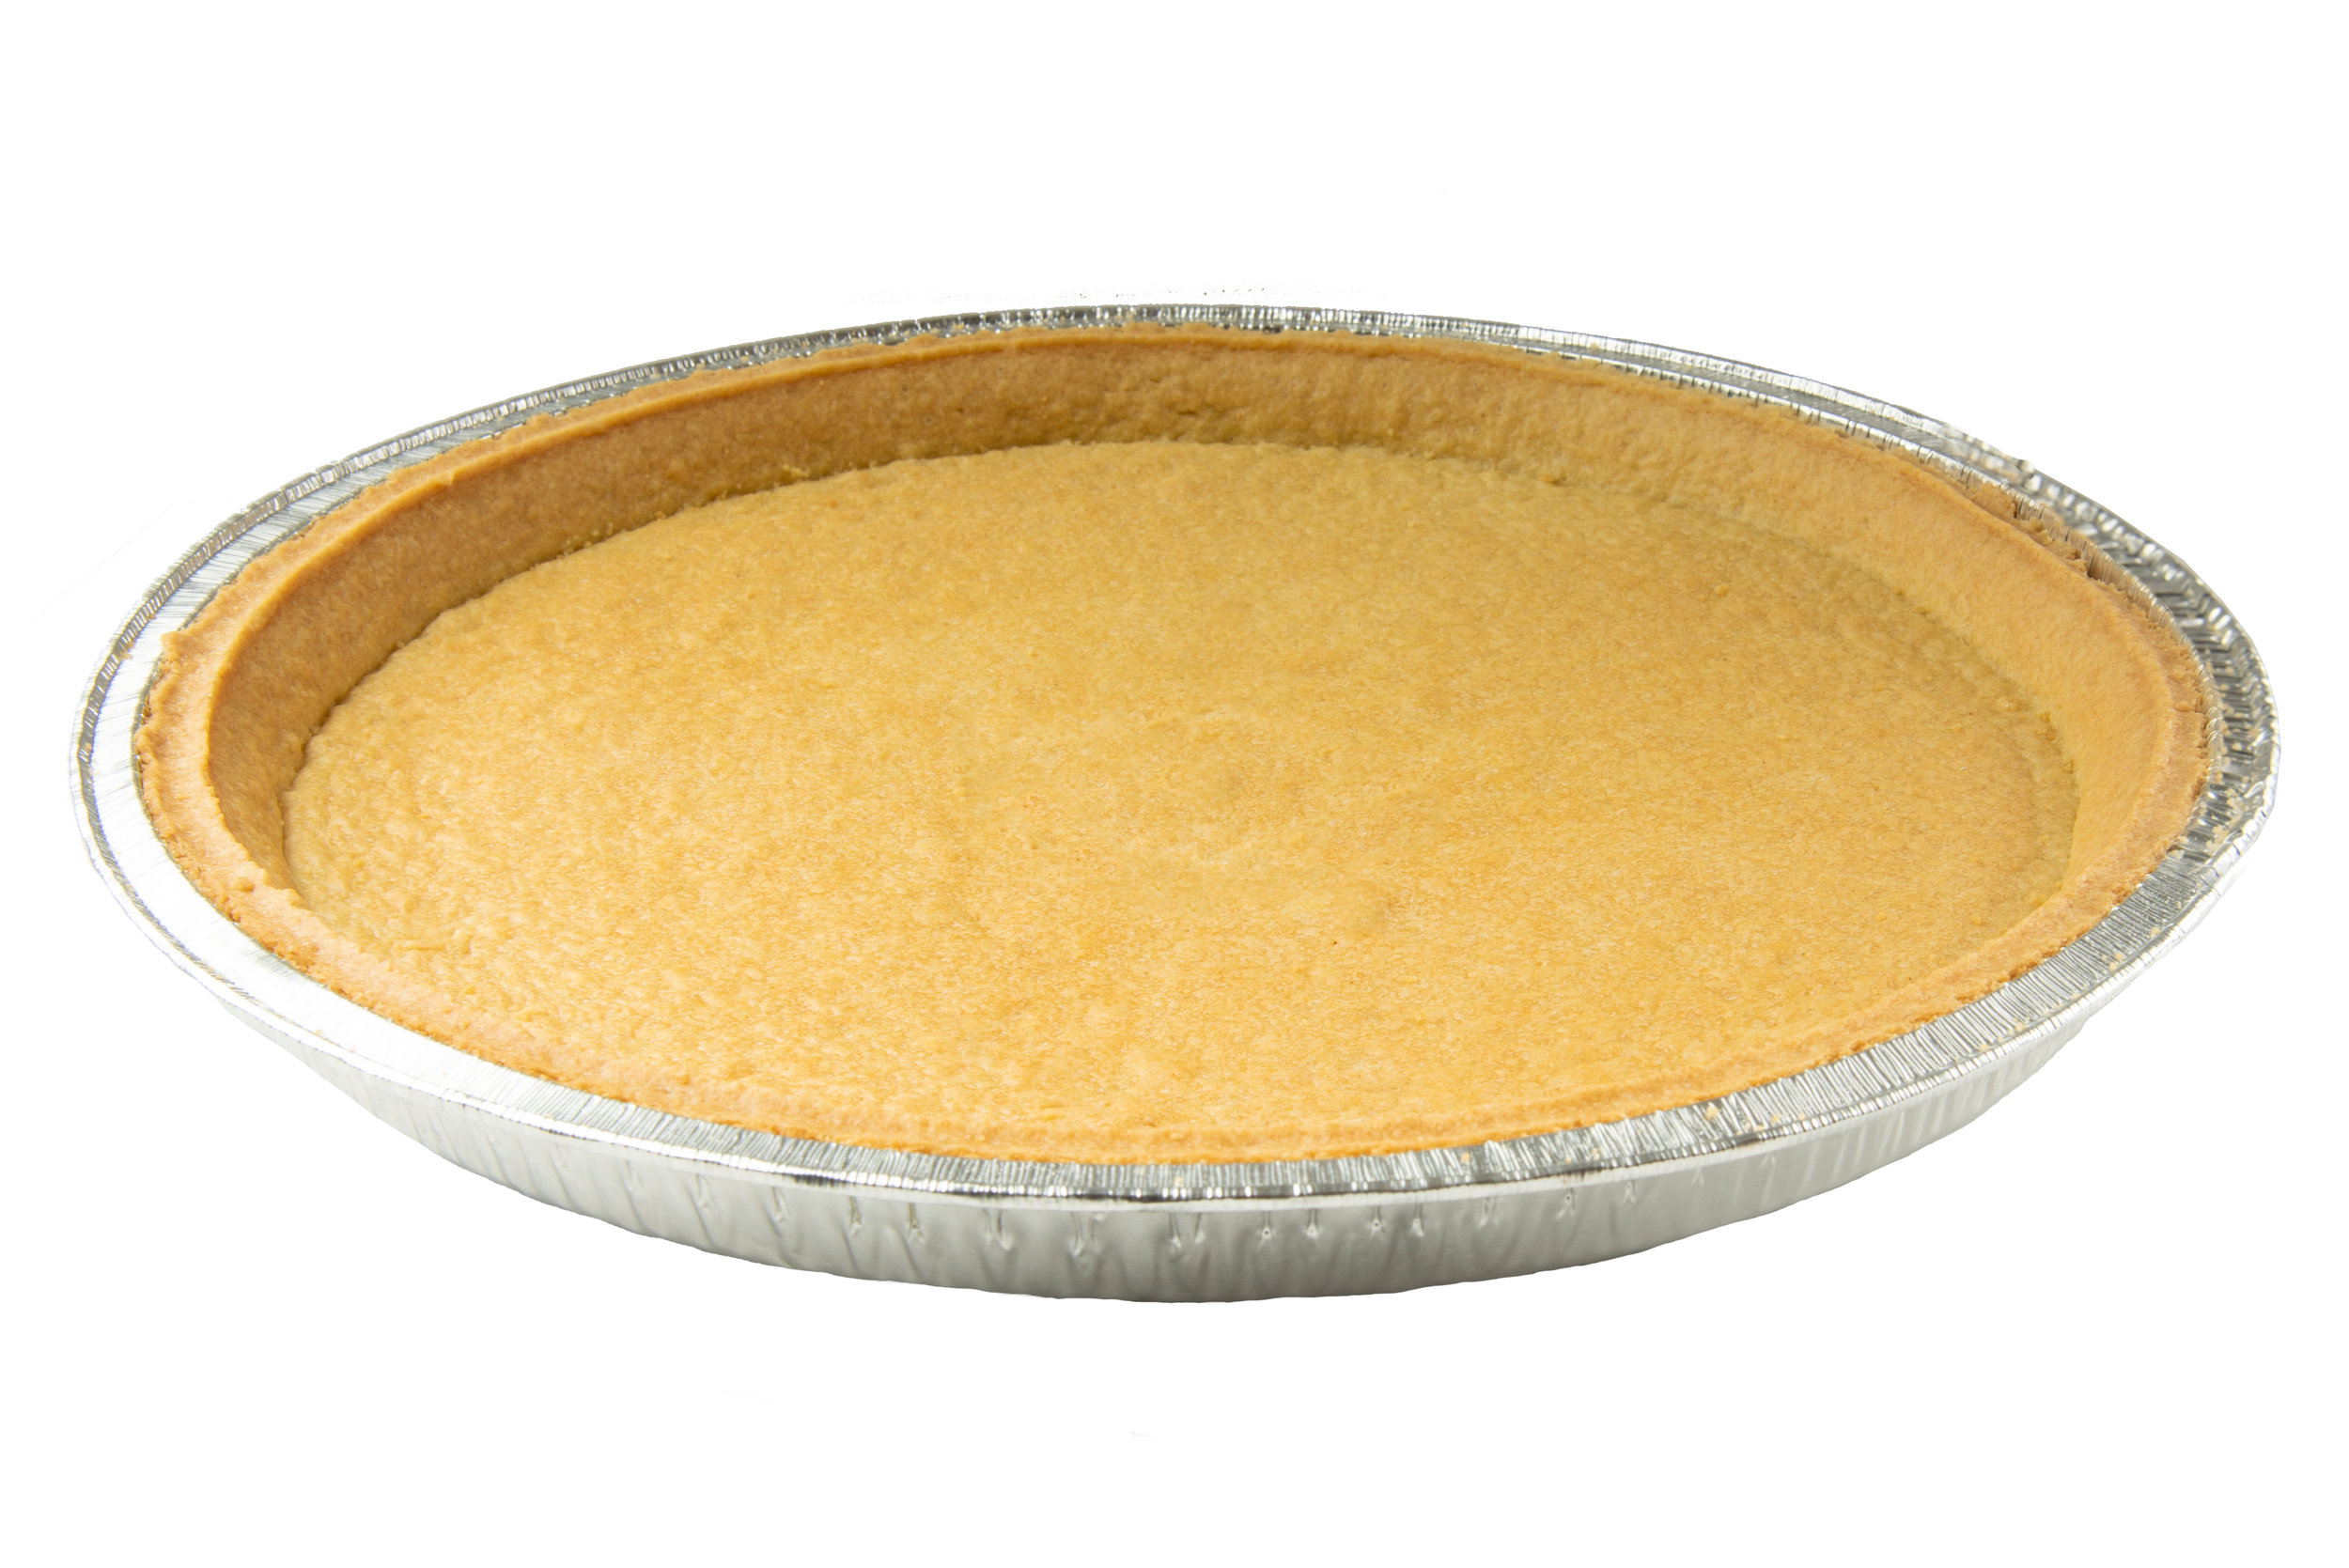 "10"" Short Sweet Shallow Pastry in Tin   Product code - FF53100shlw  Dimensions - 25.0 x 2.5 cm  15 units per box"